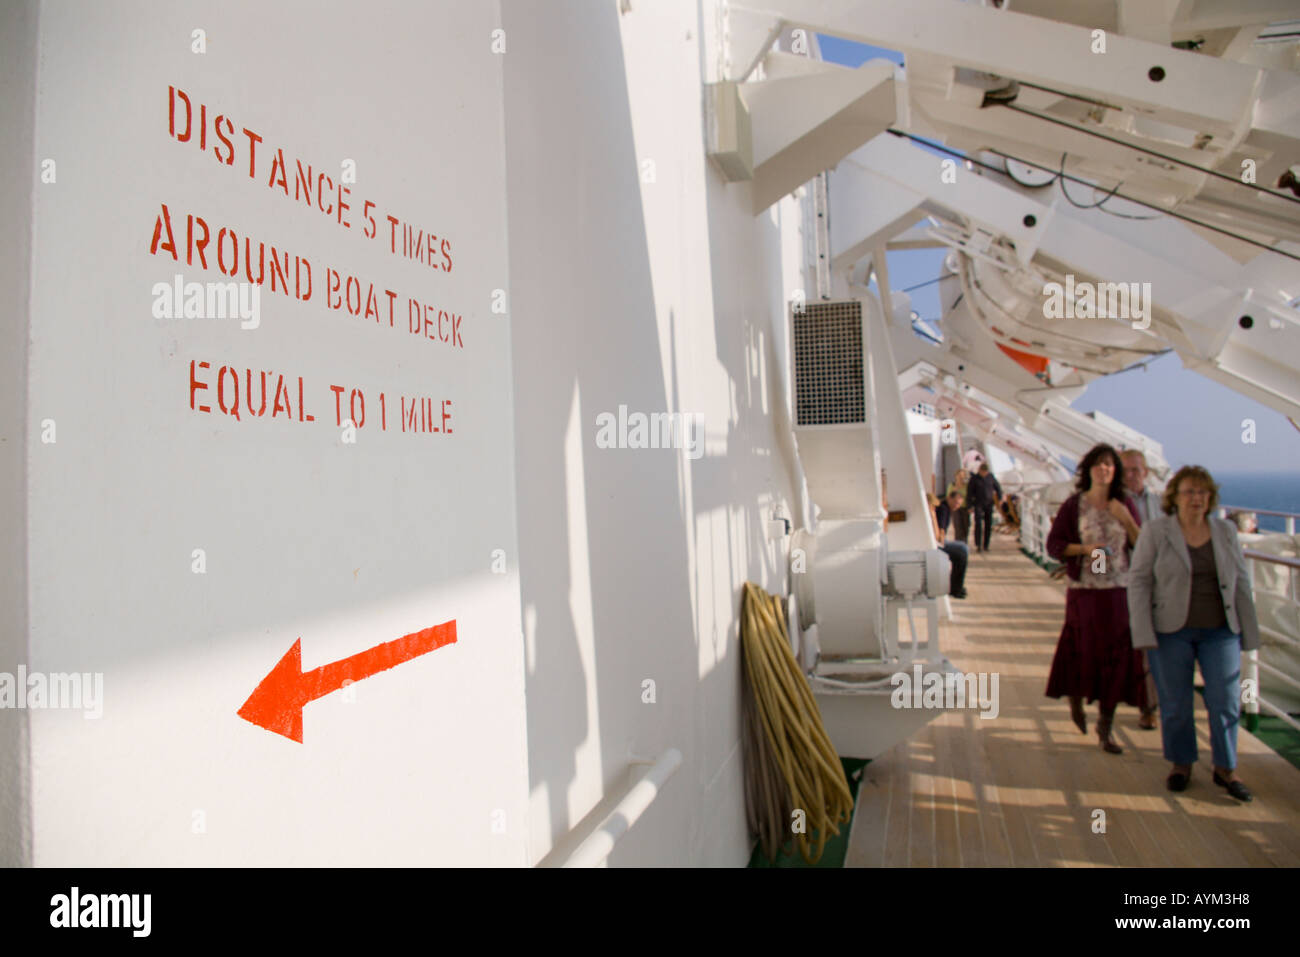 Distance five times around the deck equals one mile notice for walkers joggers and runners on board the QE2 cruise ship - Stock Image